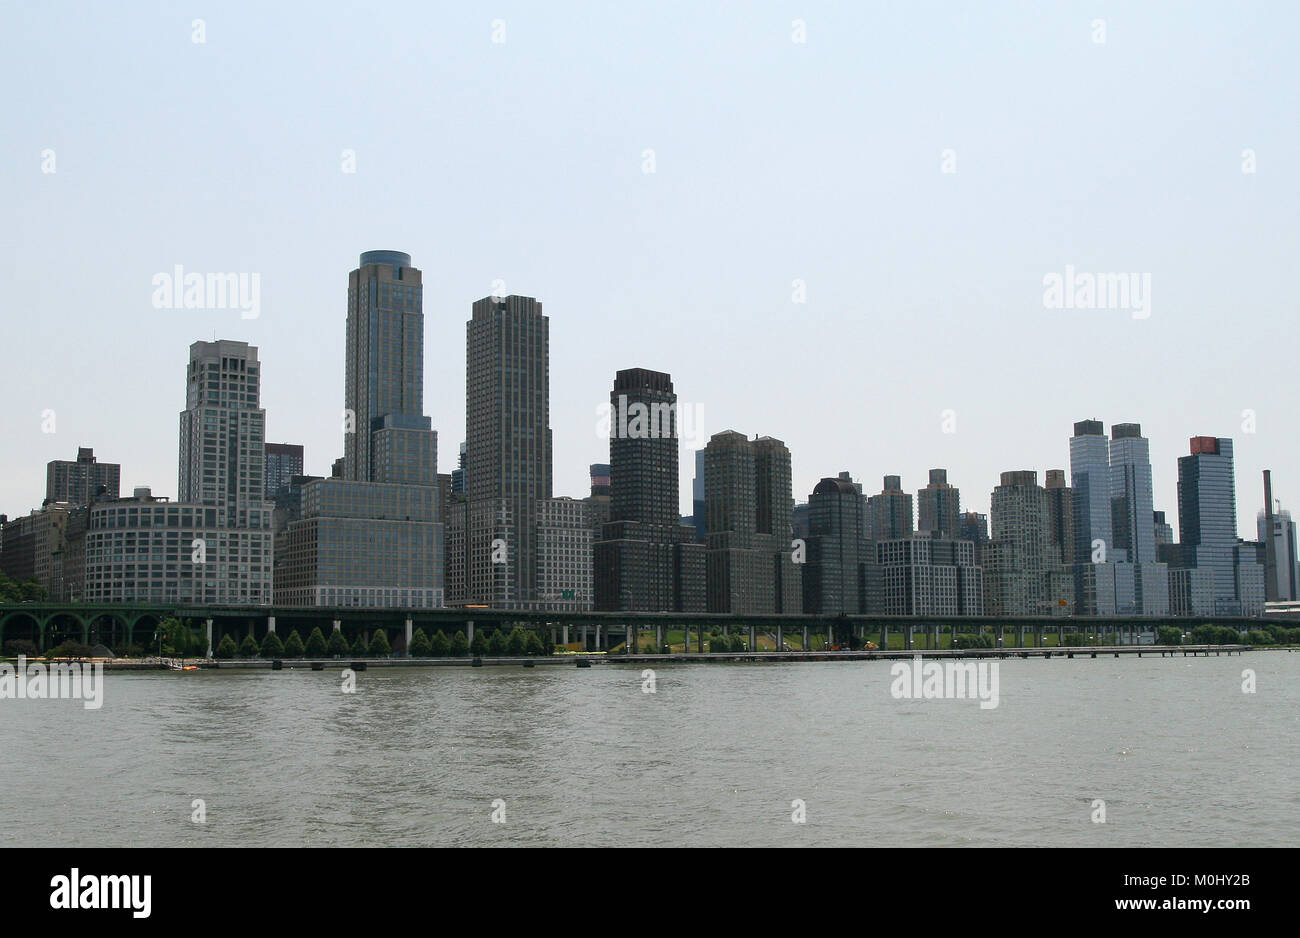 Riverside South (AKA Trump Place) apartment complex and West Side Highway, Riverside Boulevard between 59th Street - Stock Image